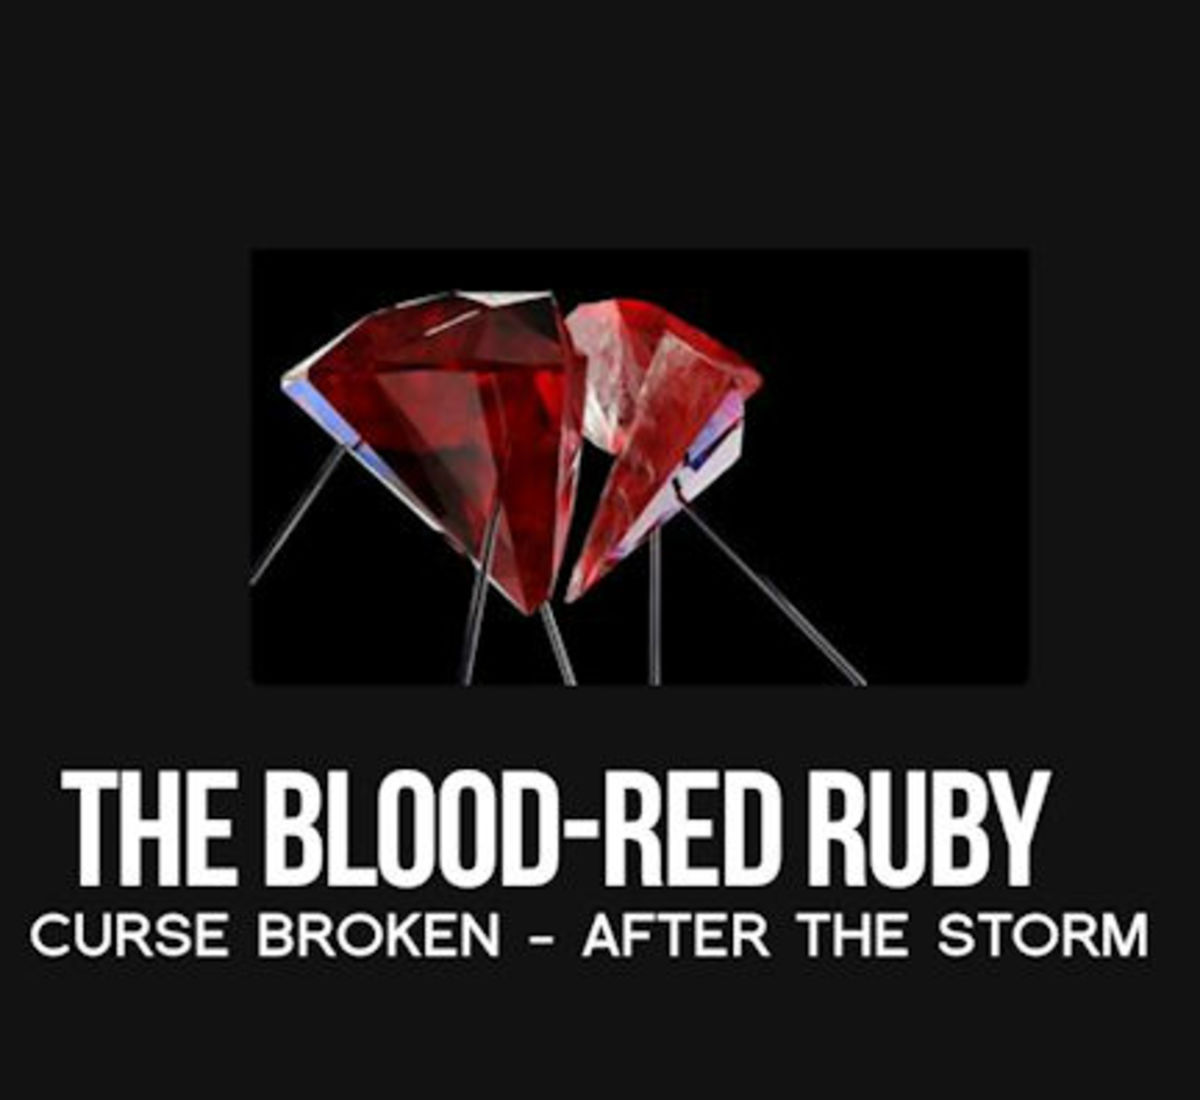 The Blood-Red Ruby: After the Storm 2